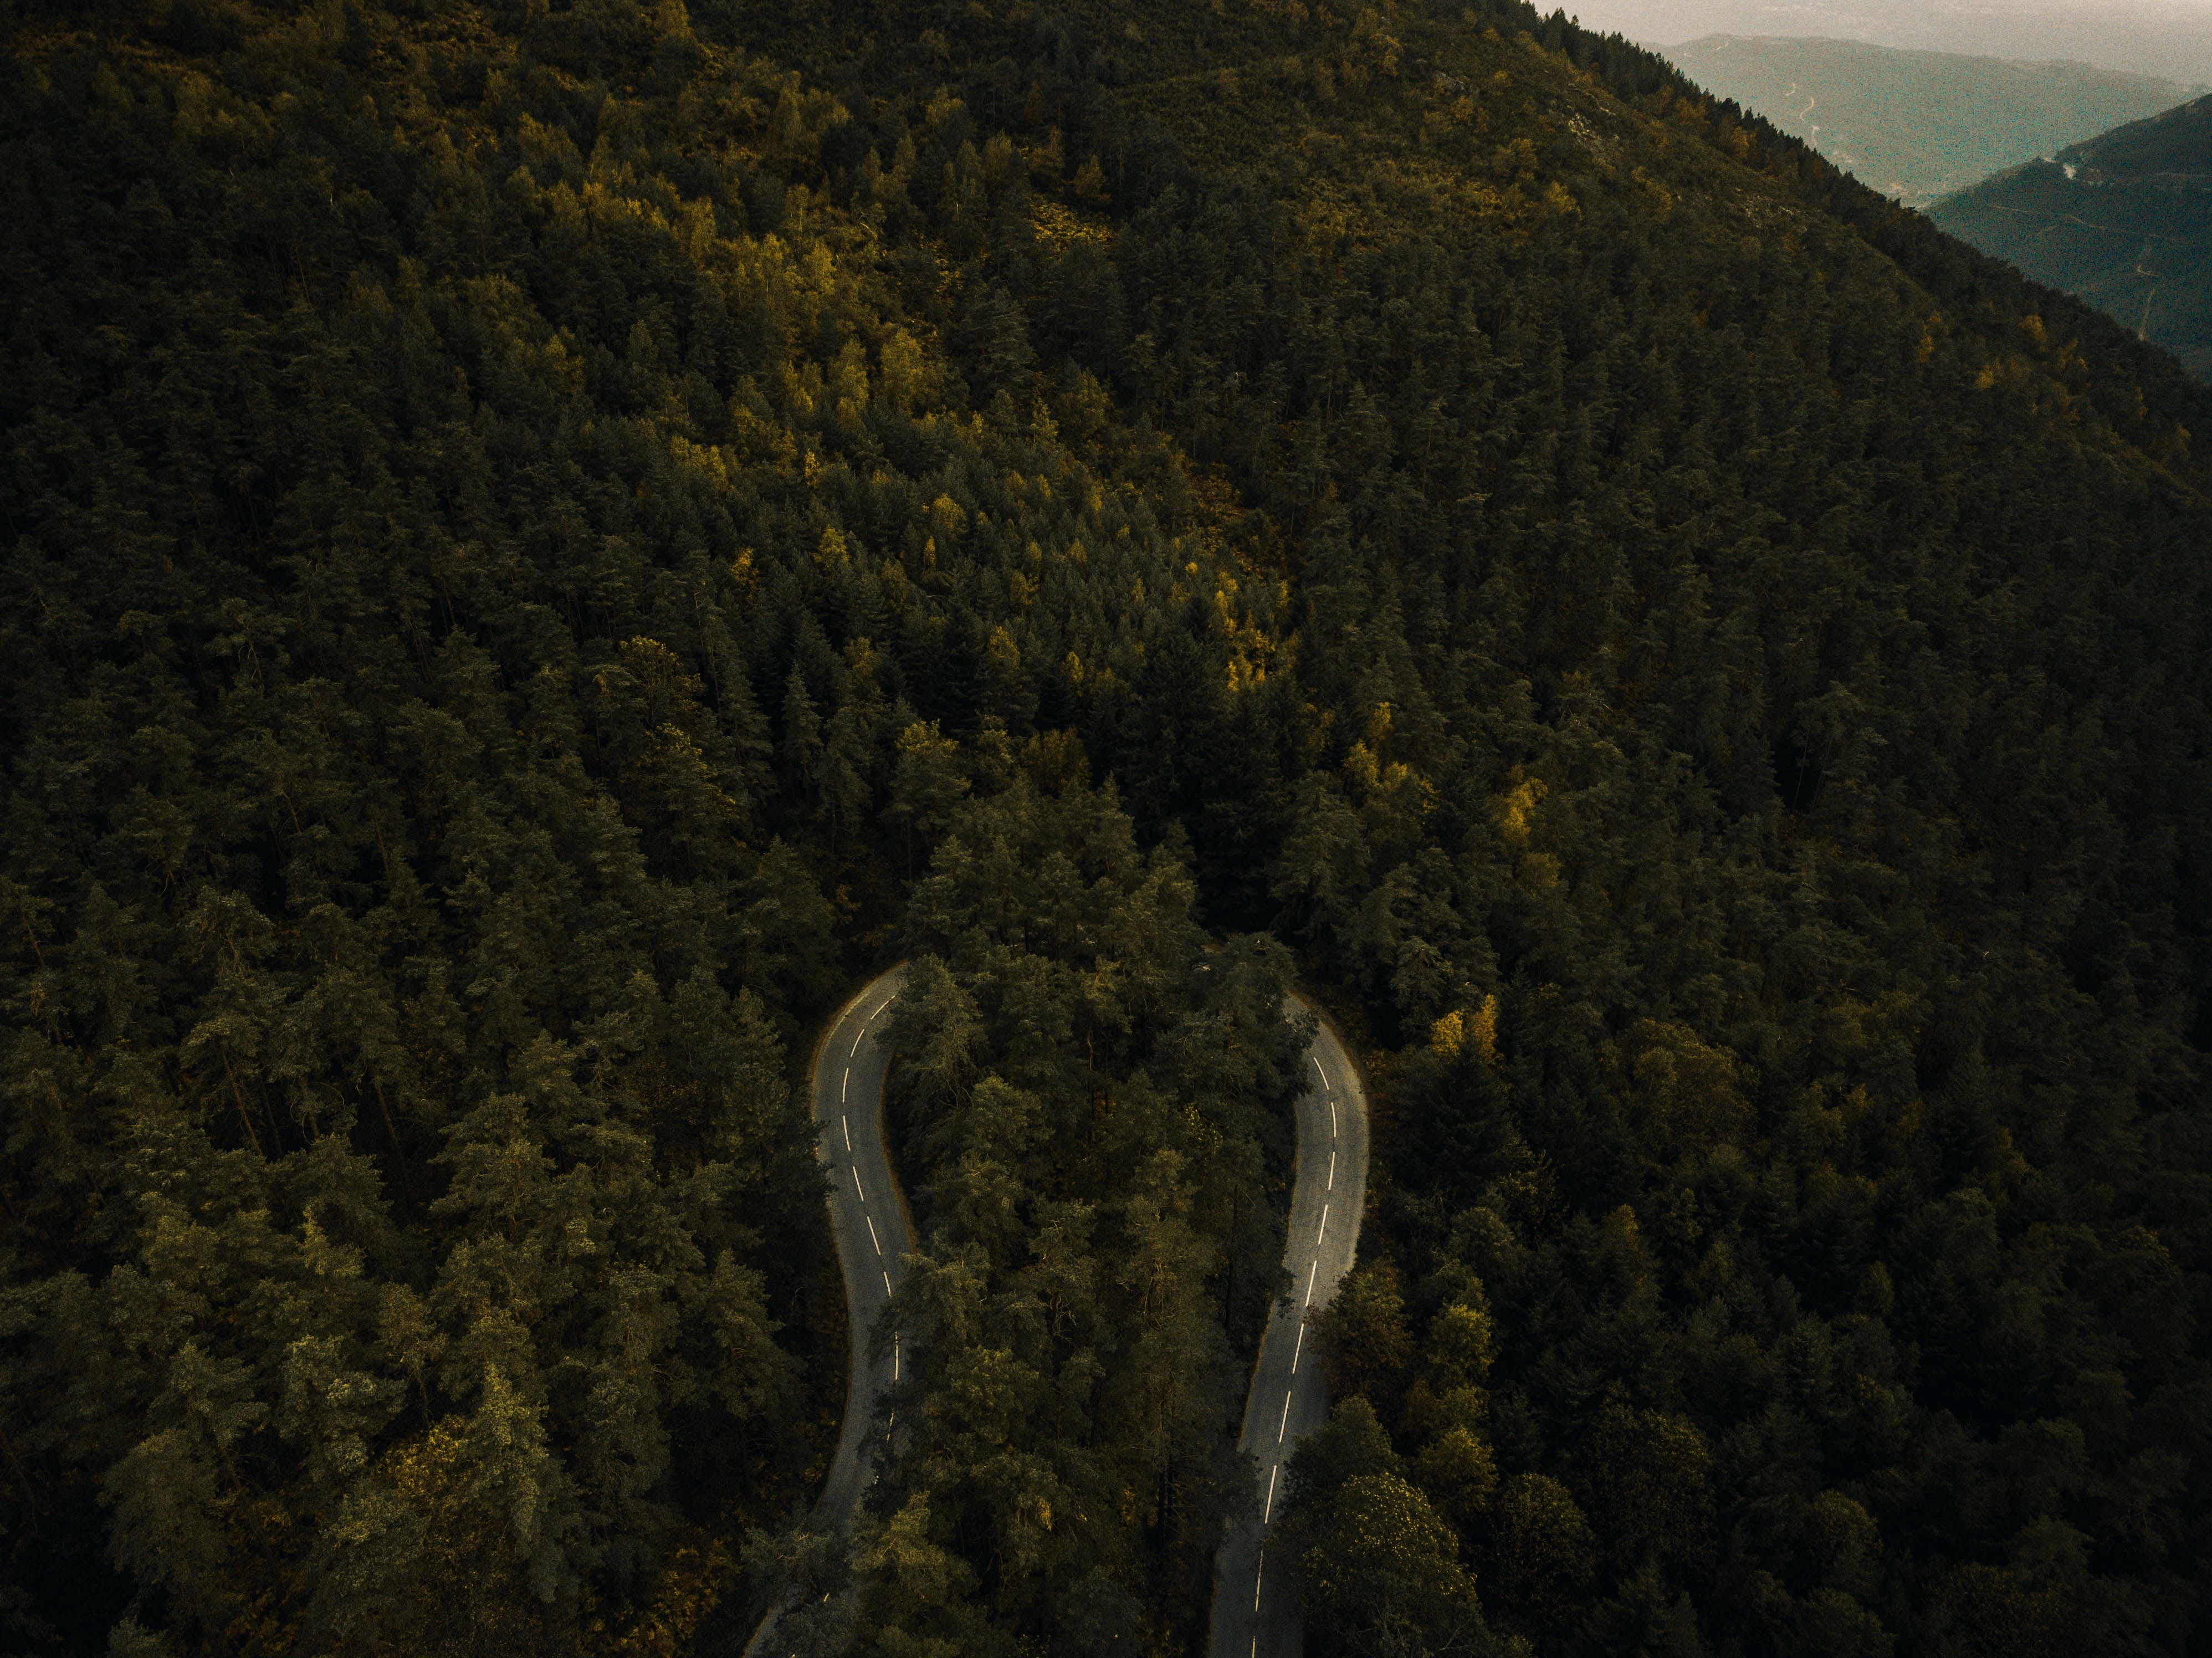 Free stock photo of road, nature, trees, mountain